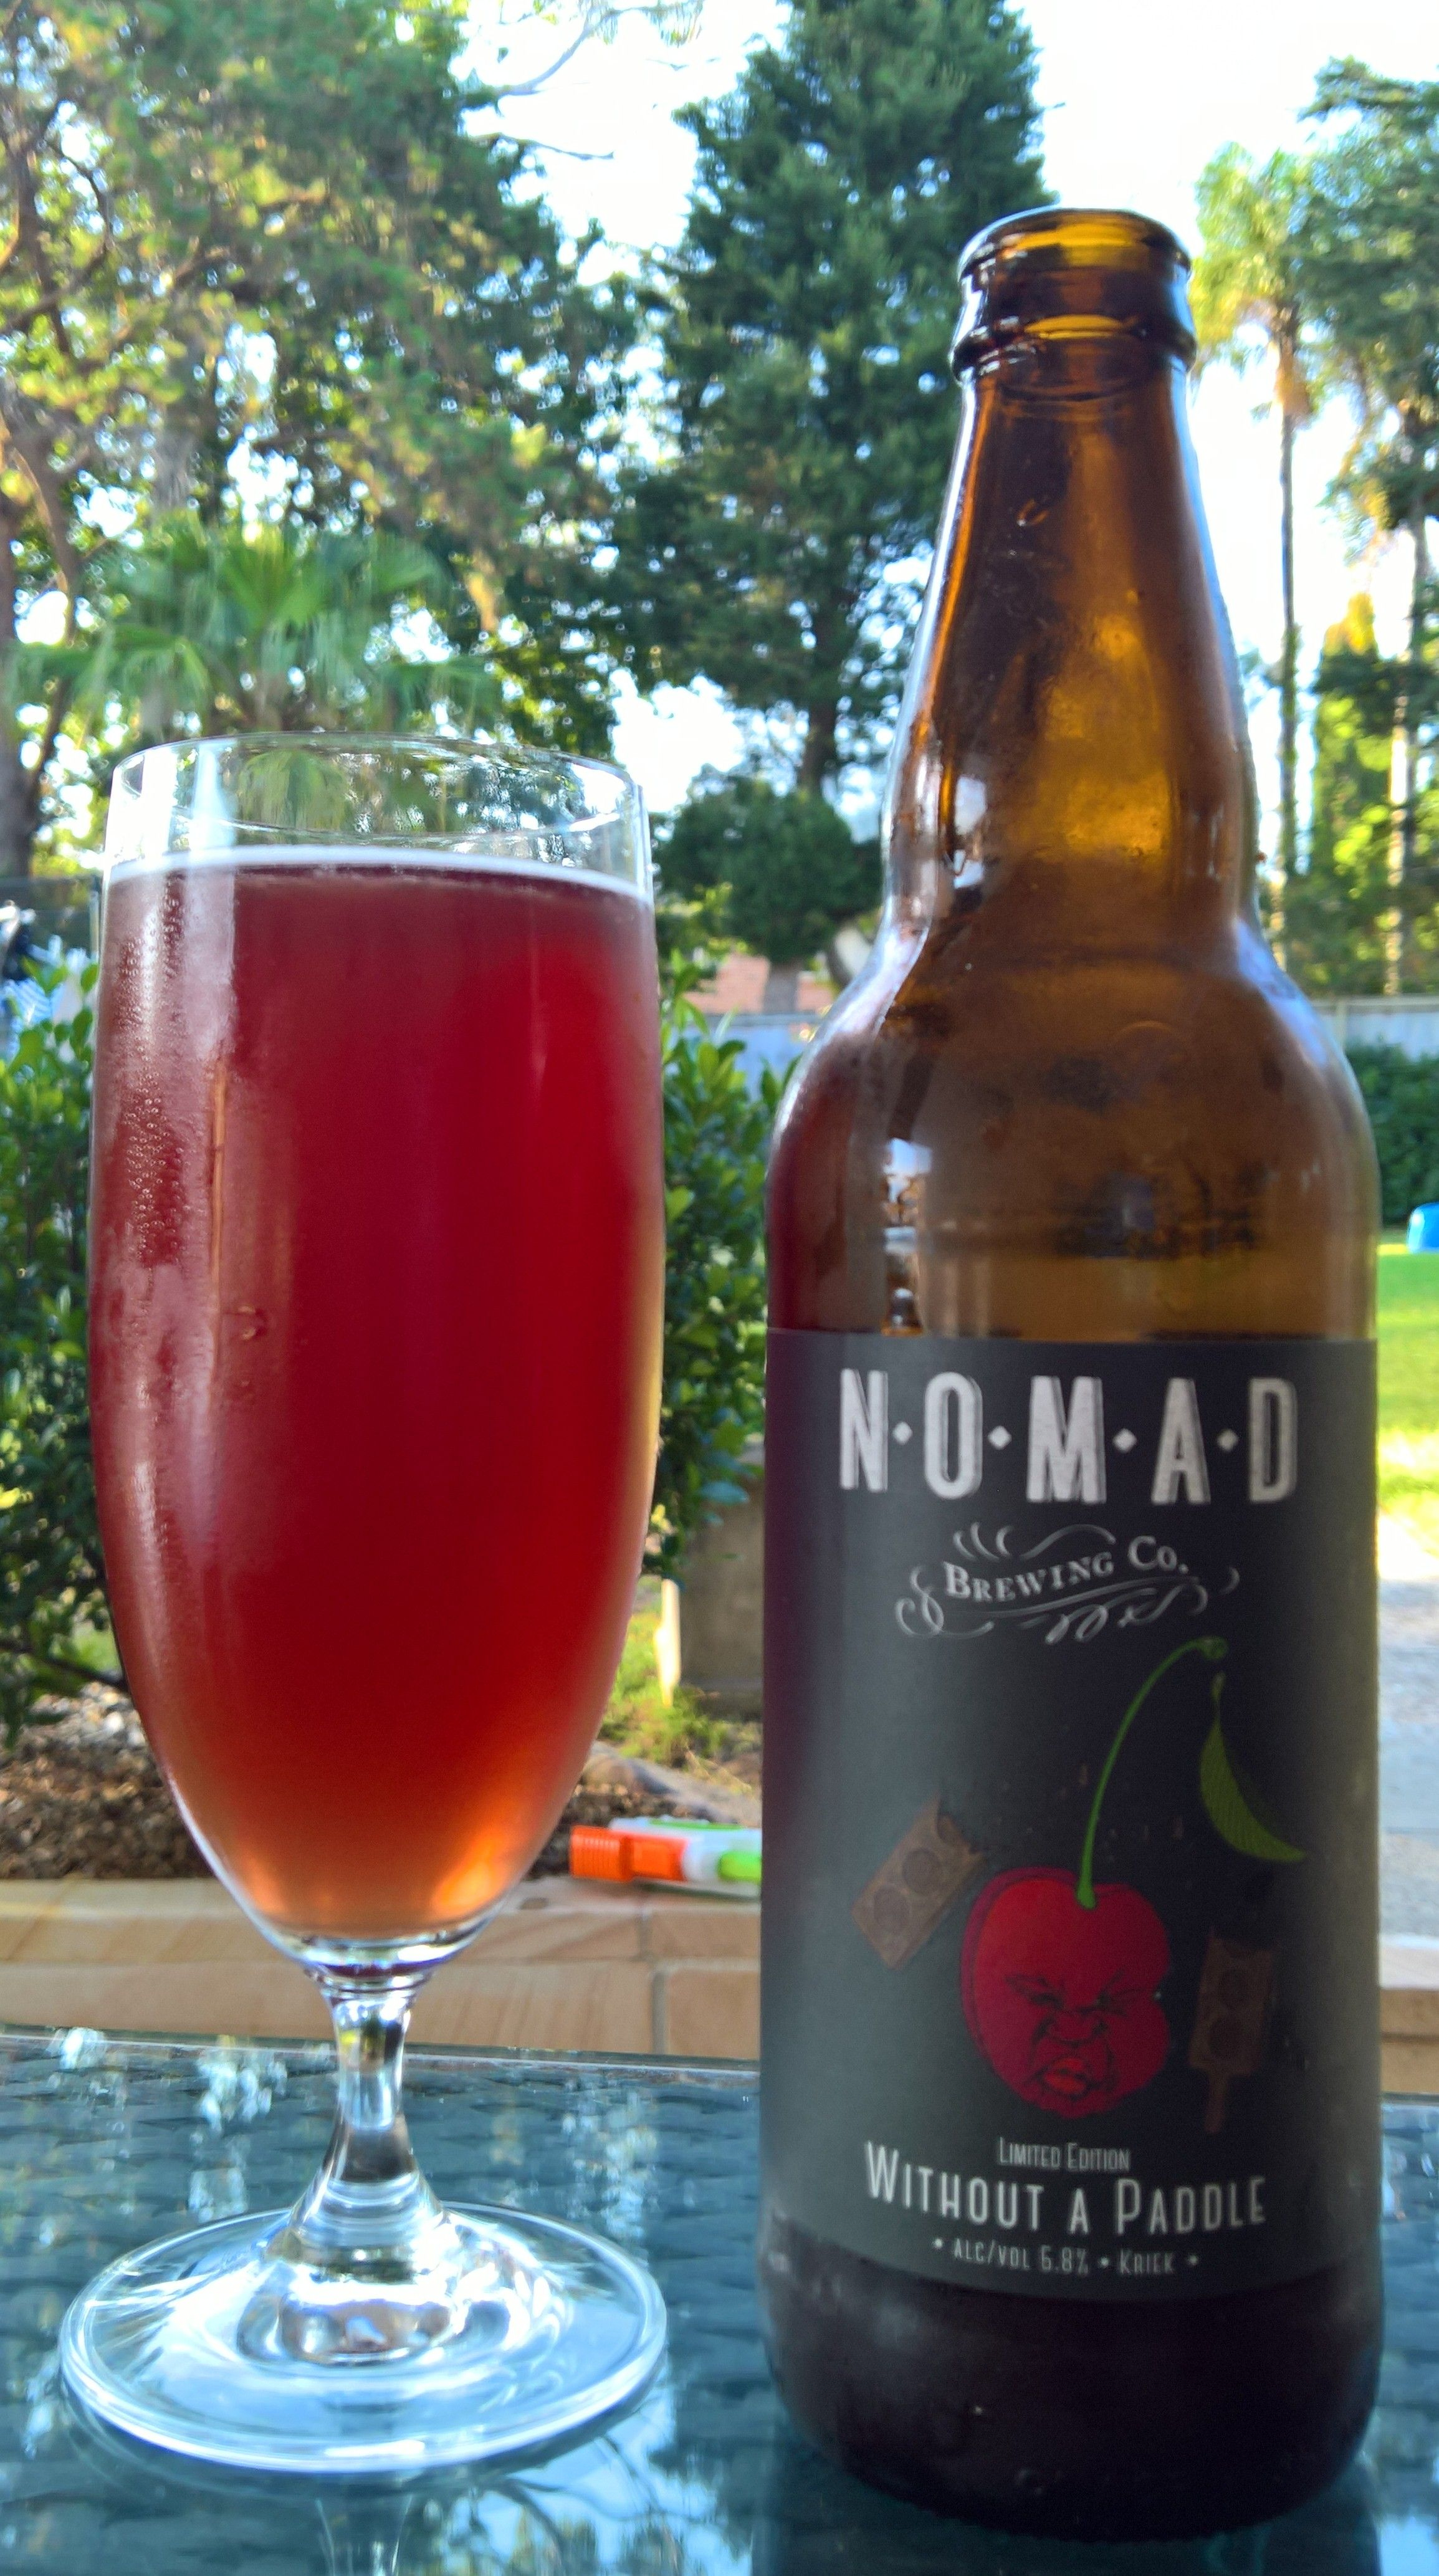 Nomad Without A Paddle Kriek Beer Bottle Beer Alcoholic Drinks